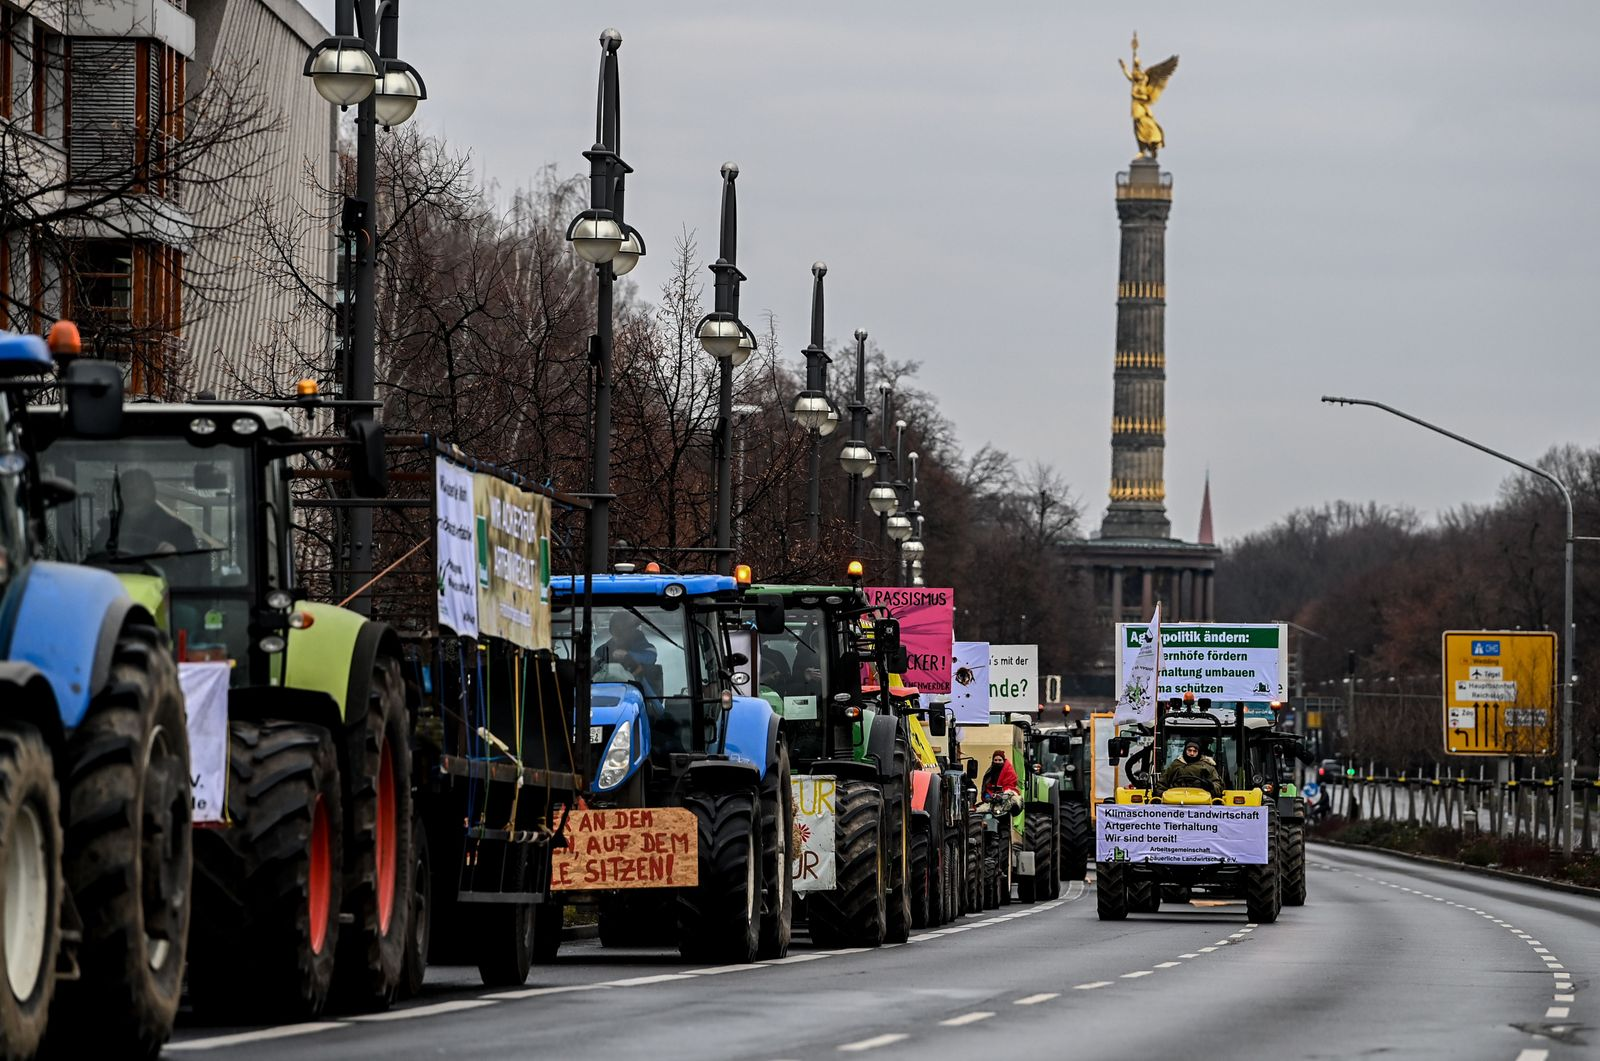 Farmers protest in Berlin, Germany - 16 Jan 2021